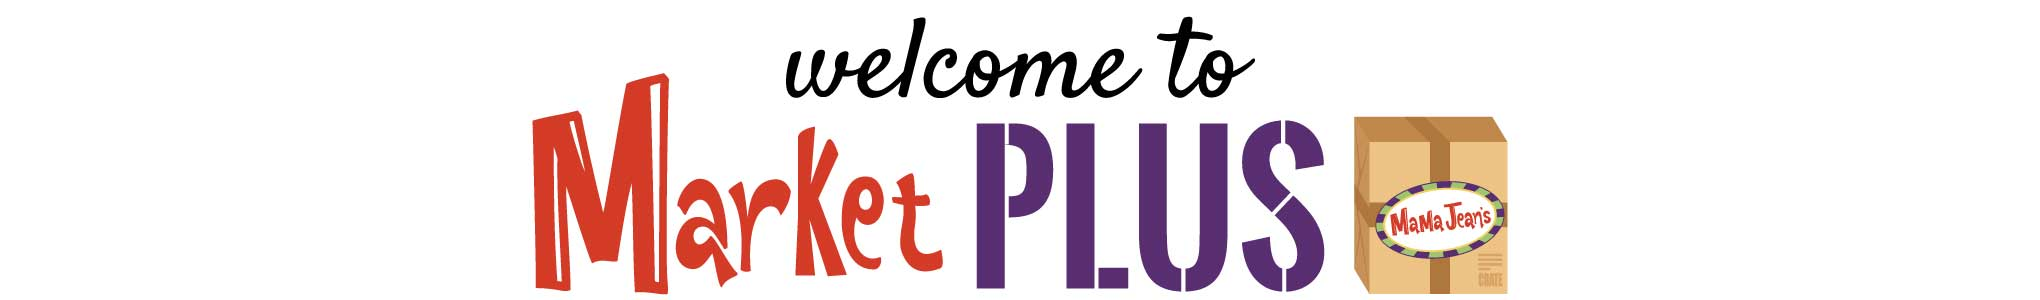 welcome to market plus